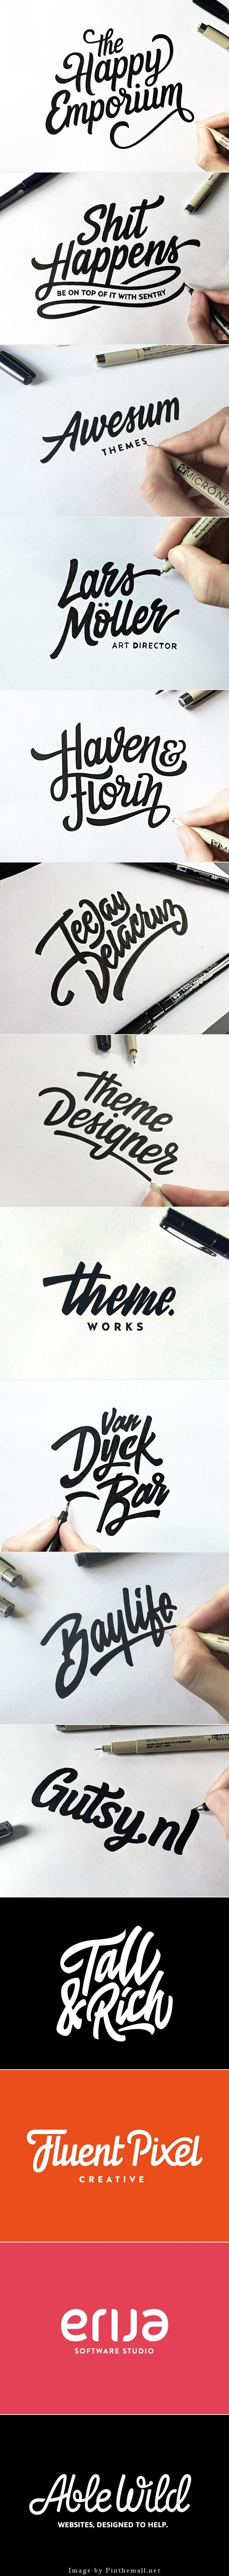 Lettering & Logotype Vol.2